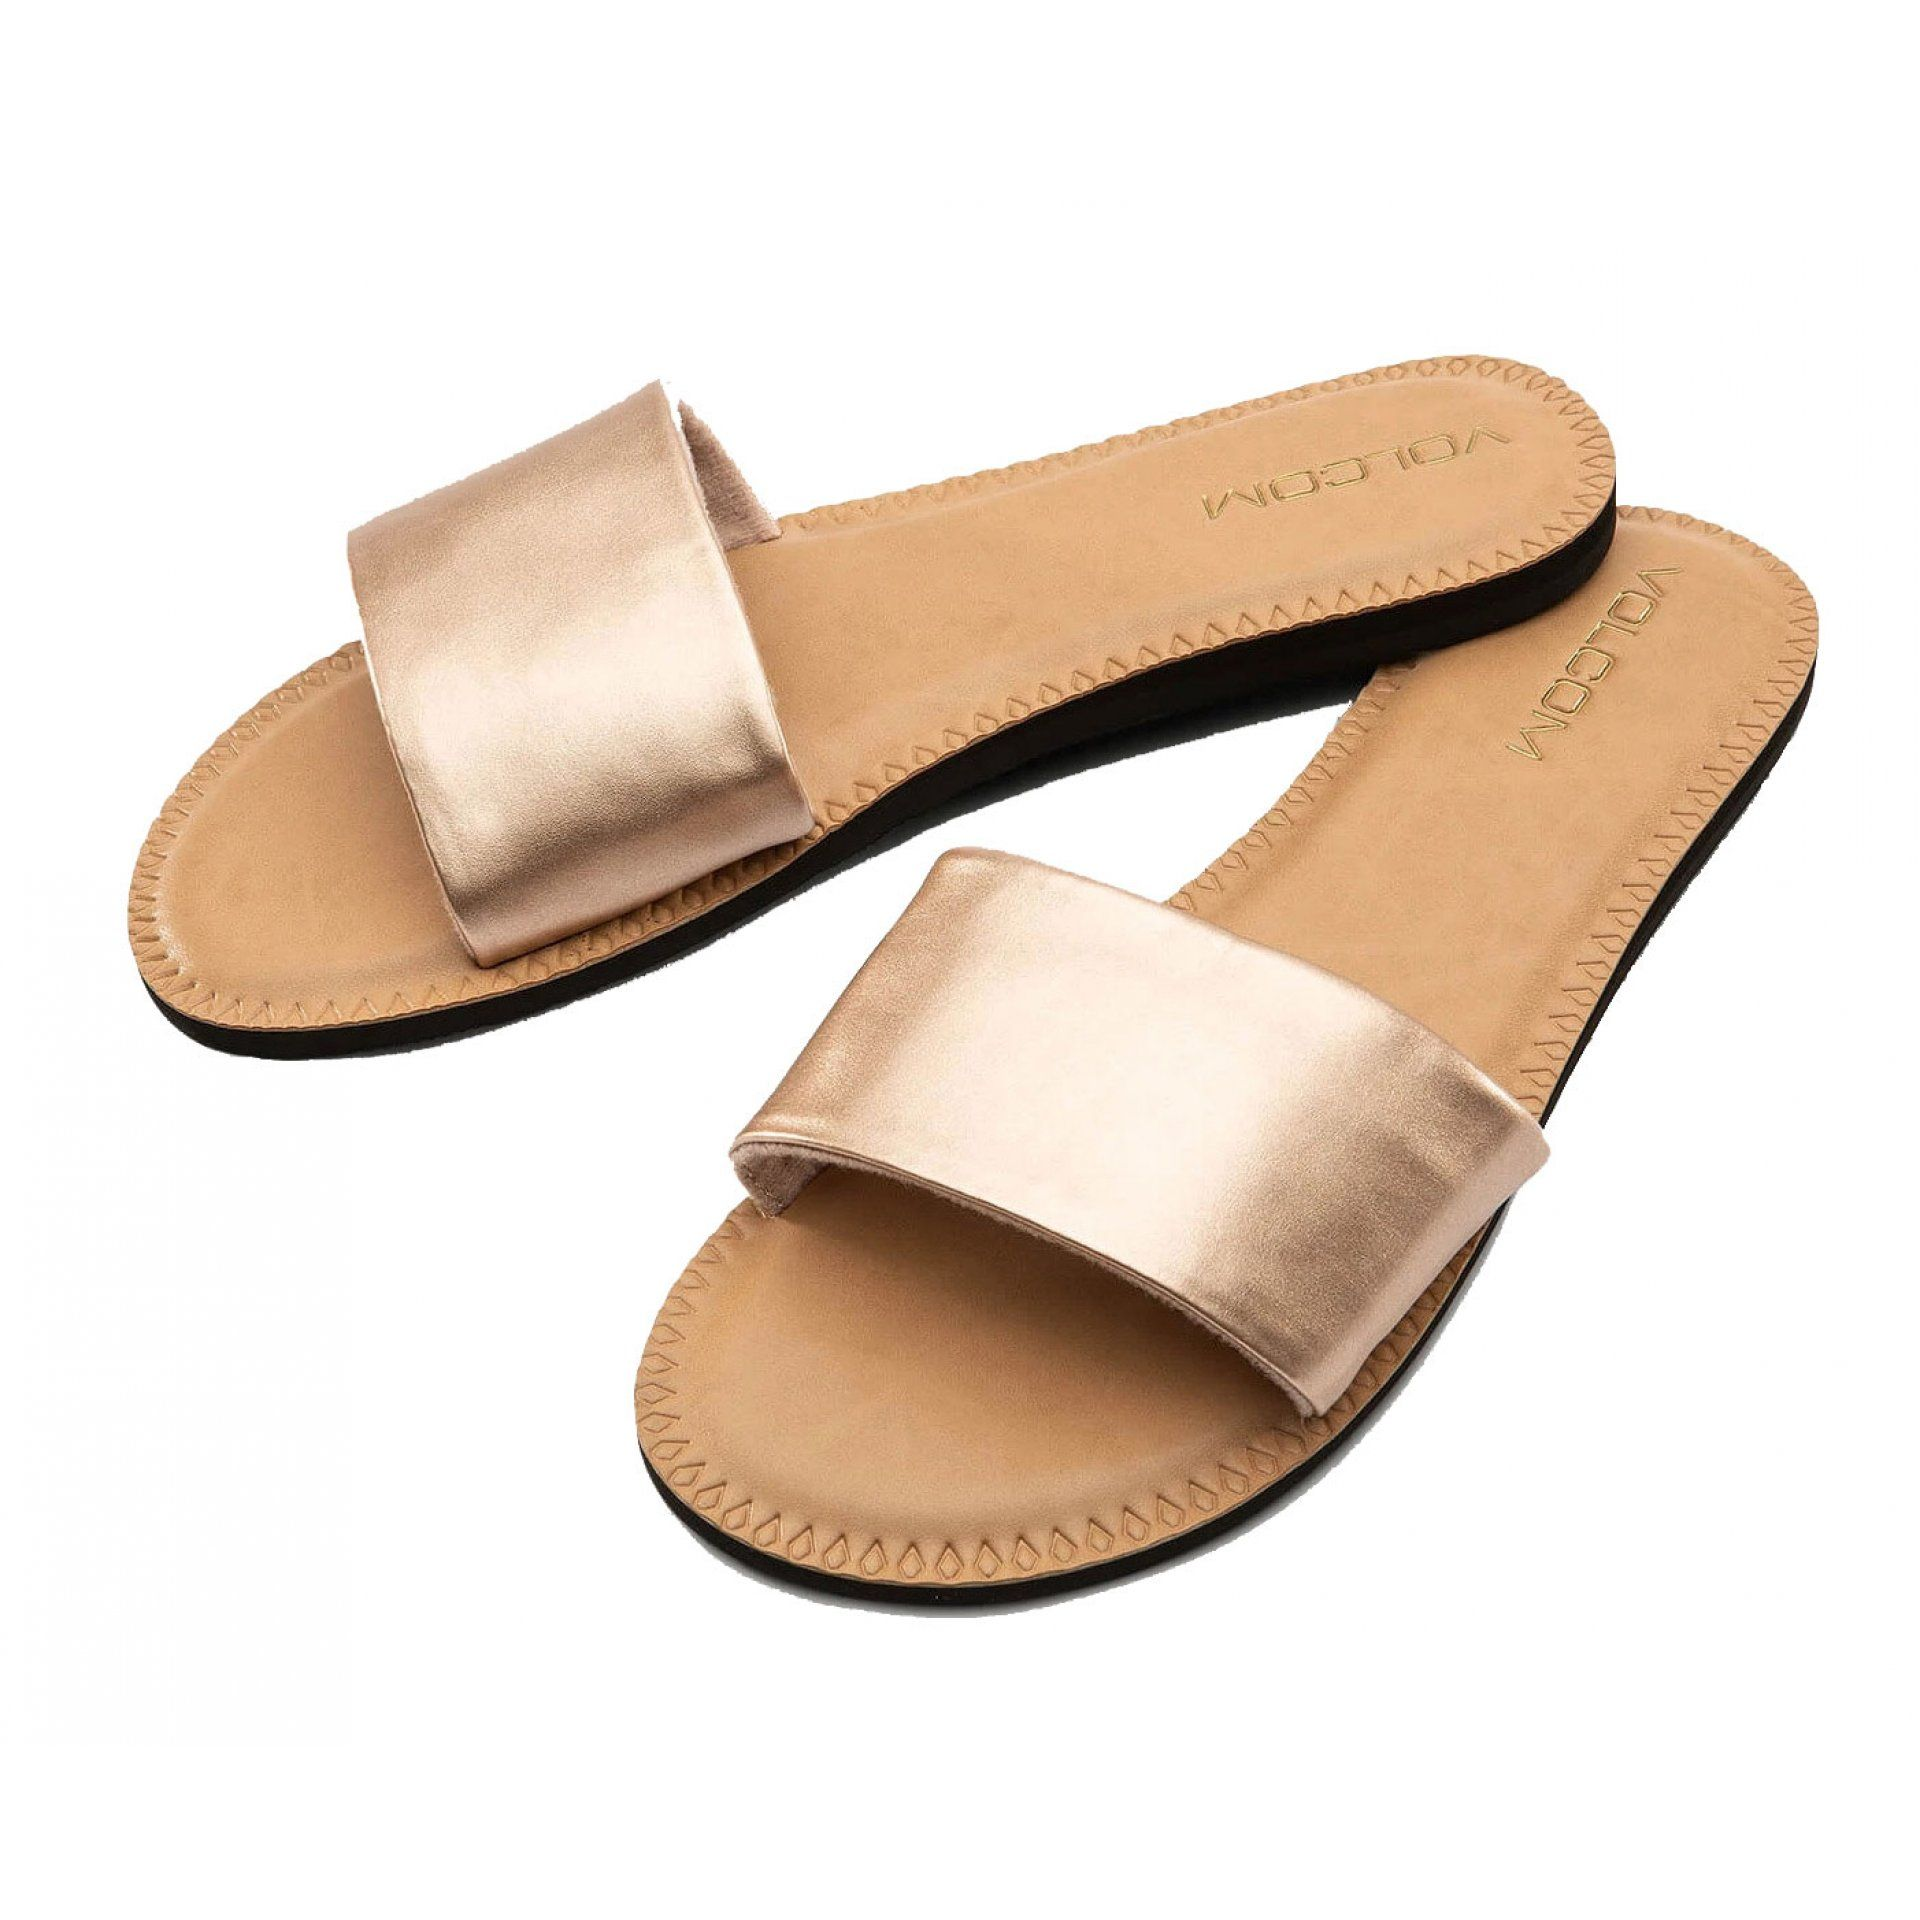 KLAPKI VOLCOM SIMPLE SLIDE W0811816 ROSE GOLD